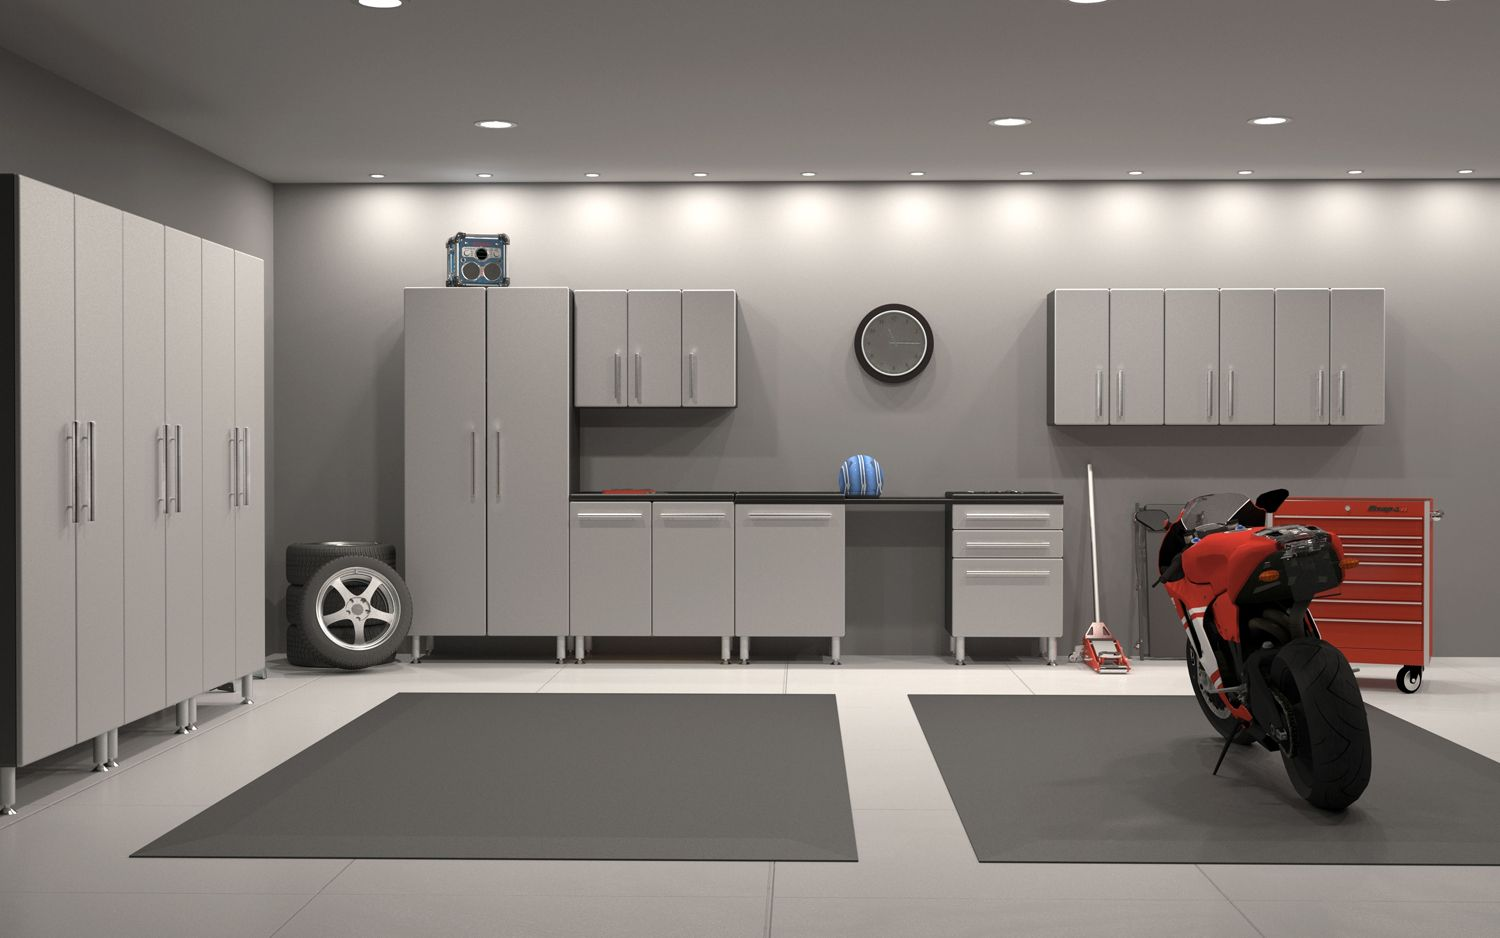 cool garage ideas elegant garage designs - Garage Design Ideas